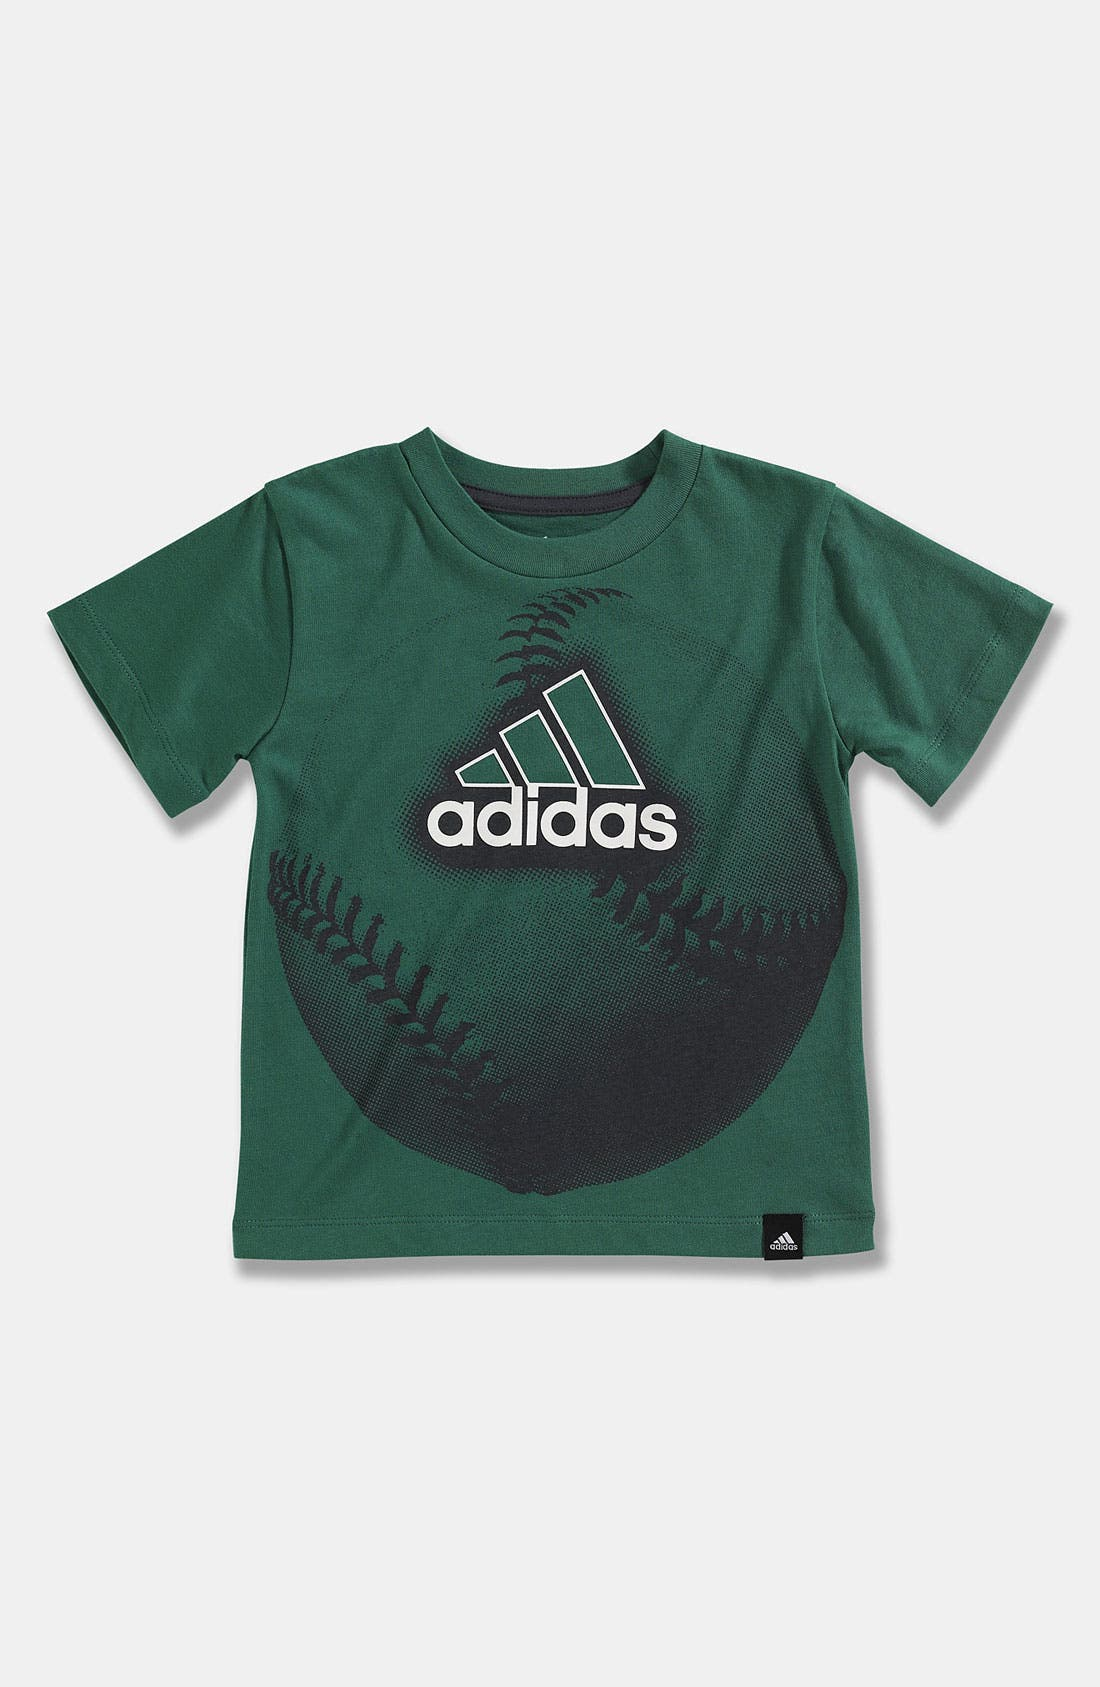 Alternate Image 1 Selected - adidas 'Big Ball' T-Shirt (Toddler)